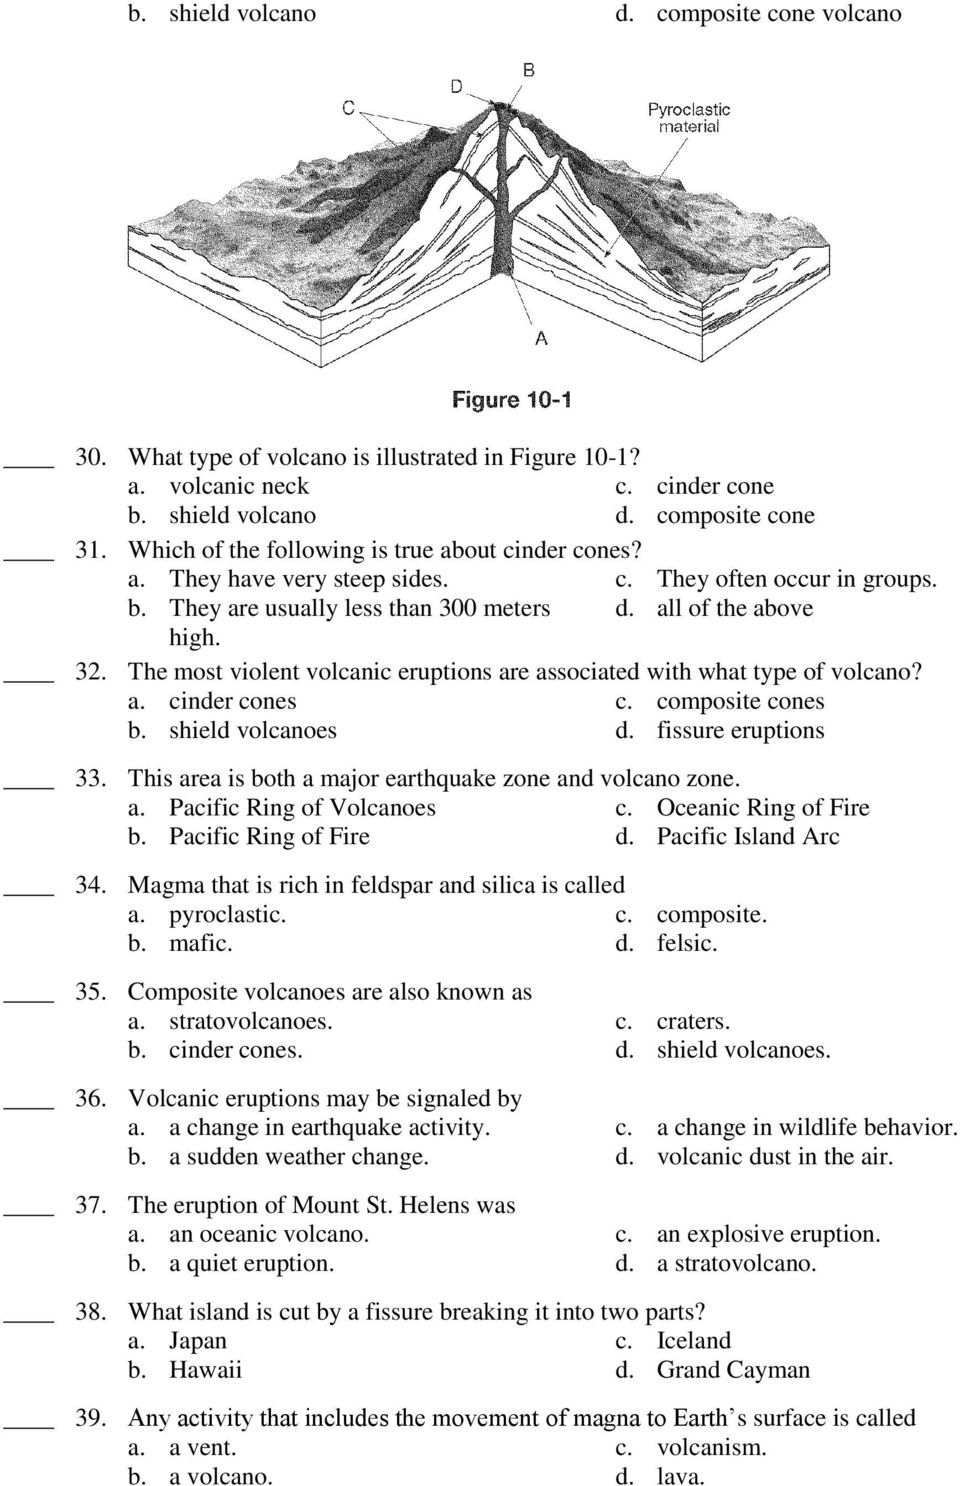 Test 3 Earth Formation Structure Plate Boundaries Volcanism Pdf Cinder Cone Volcano Diagram The Most Violent Volcanic Eruptions Are Associated With What Type Of A